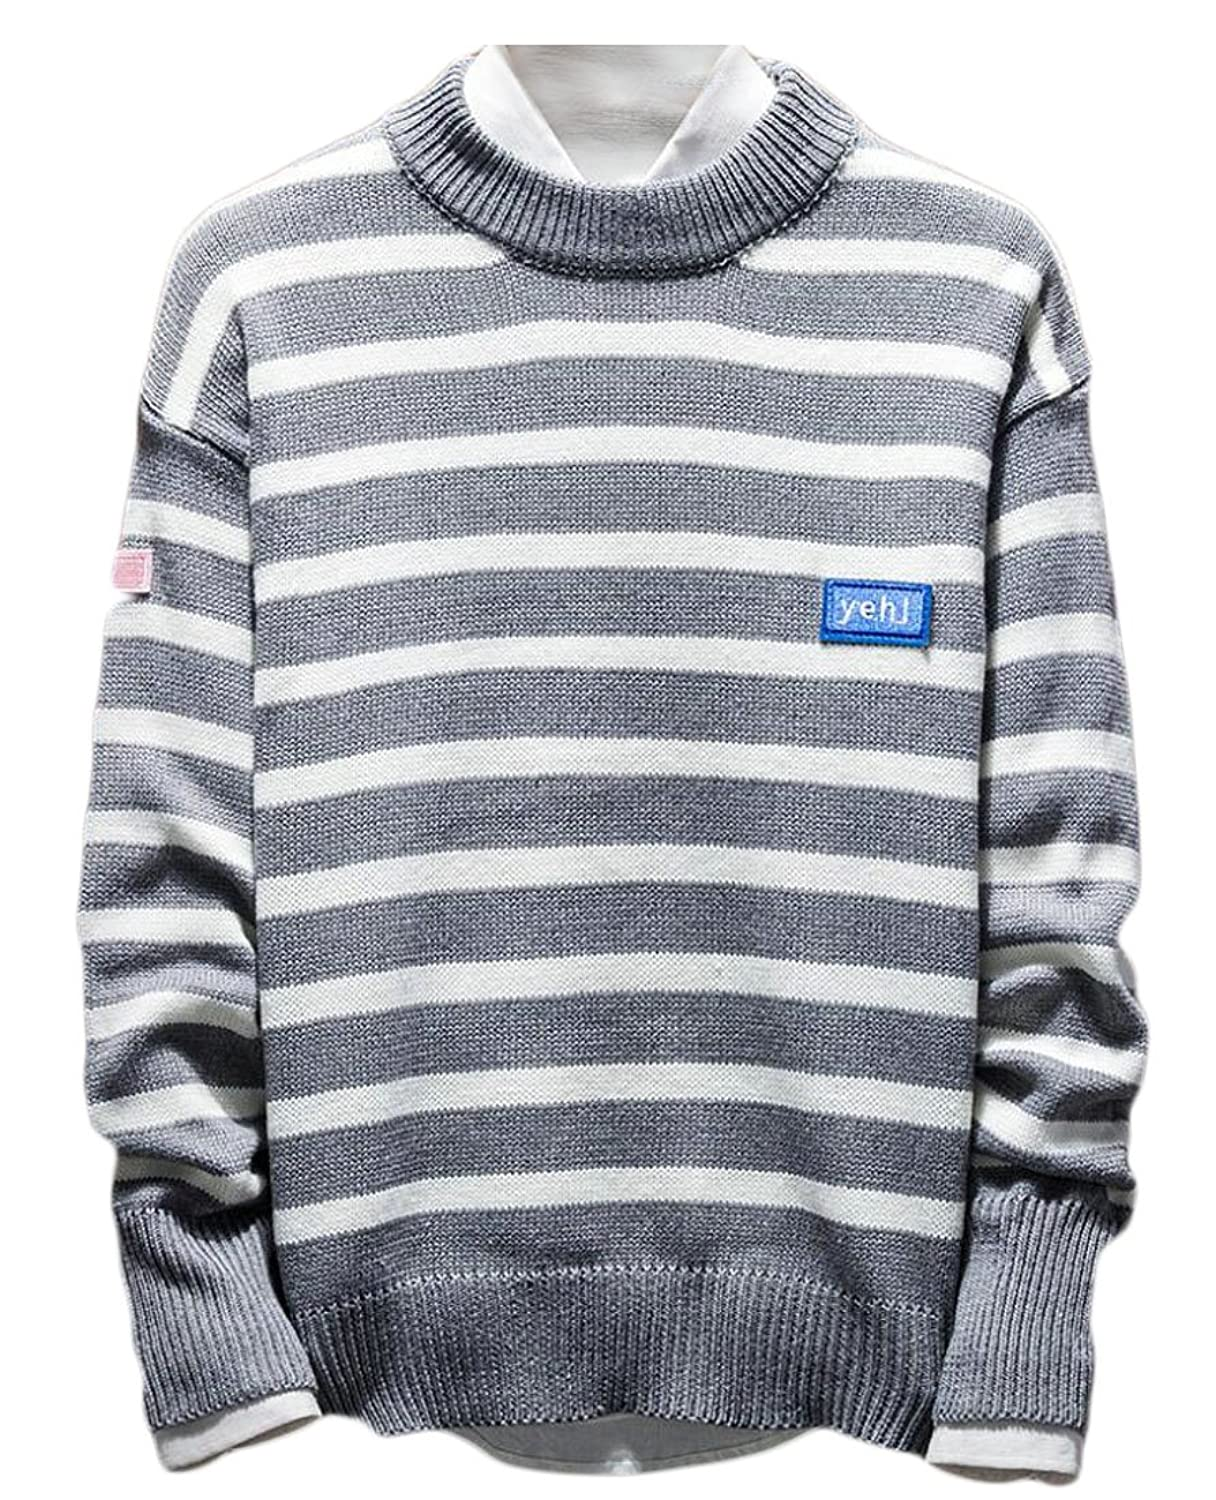 Cheap GAGA Men Classic Striped Print Crew Neck Knit Sweater hot sale